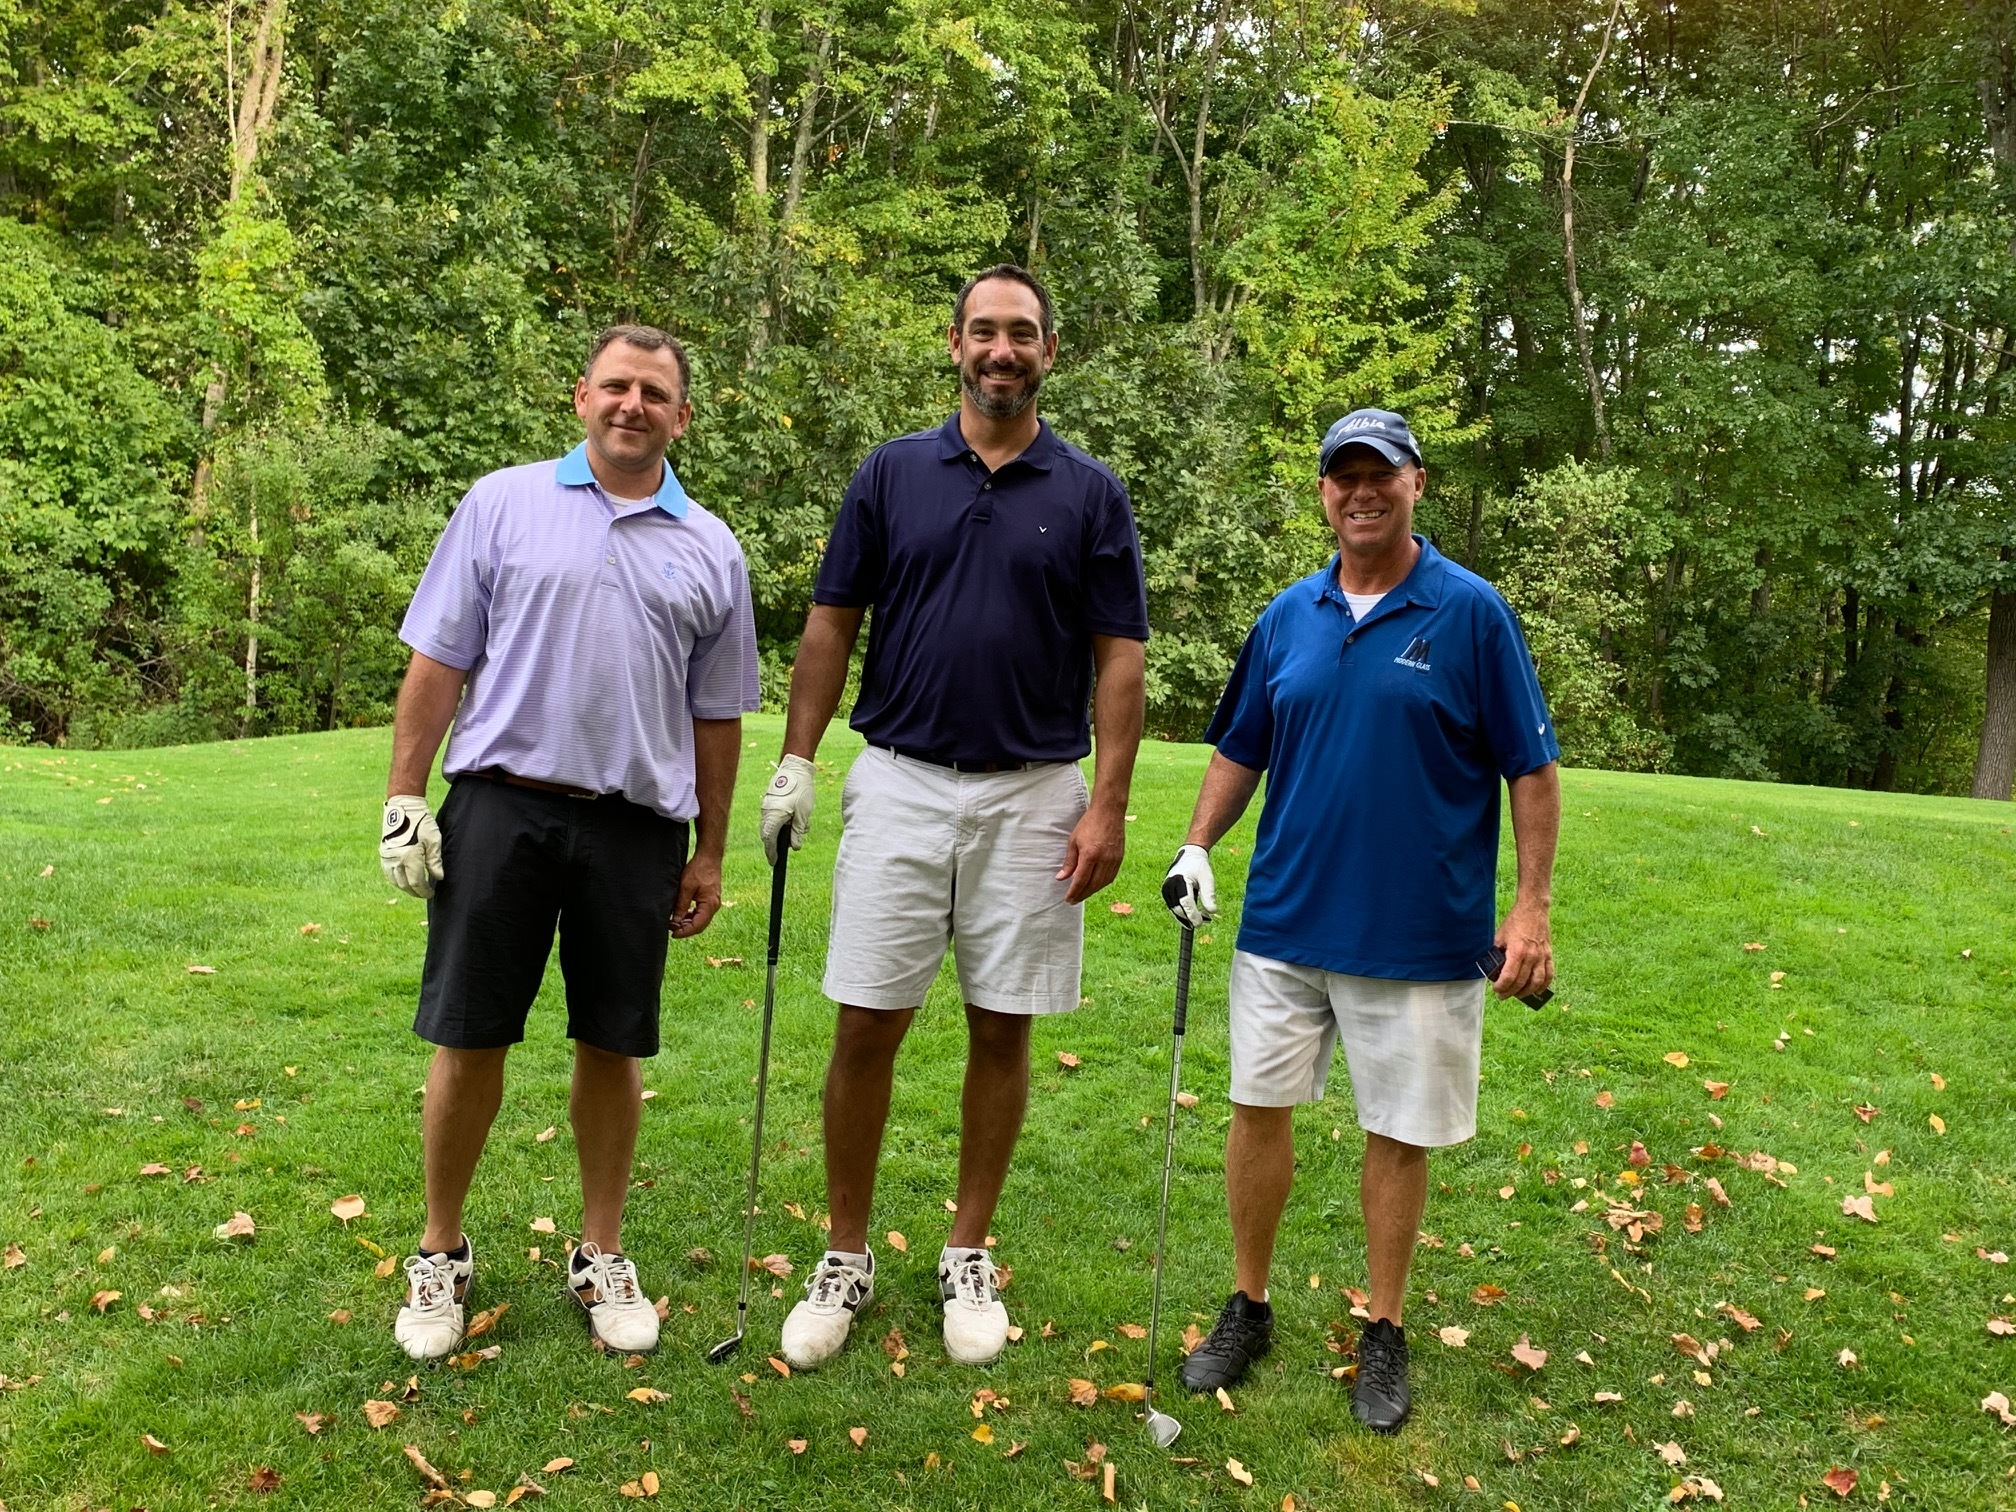 THE 28TH ANNUAL CATALDO SWING FORE HOPE GOLF TOURNAMENT gallery image #6